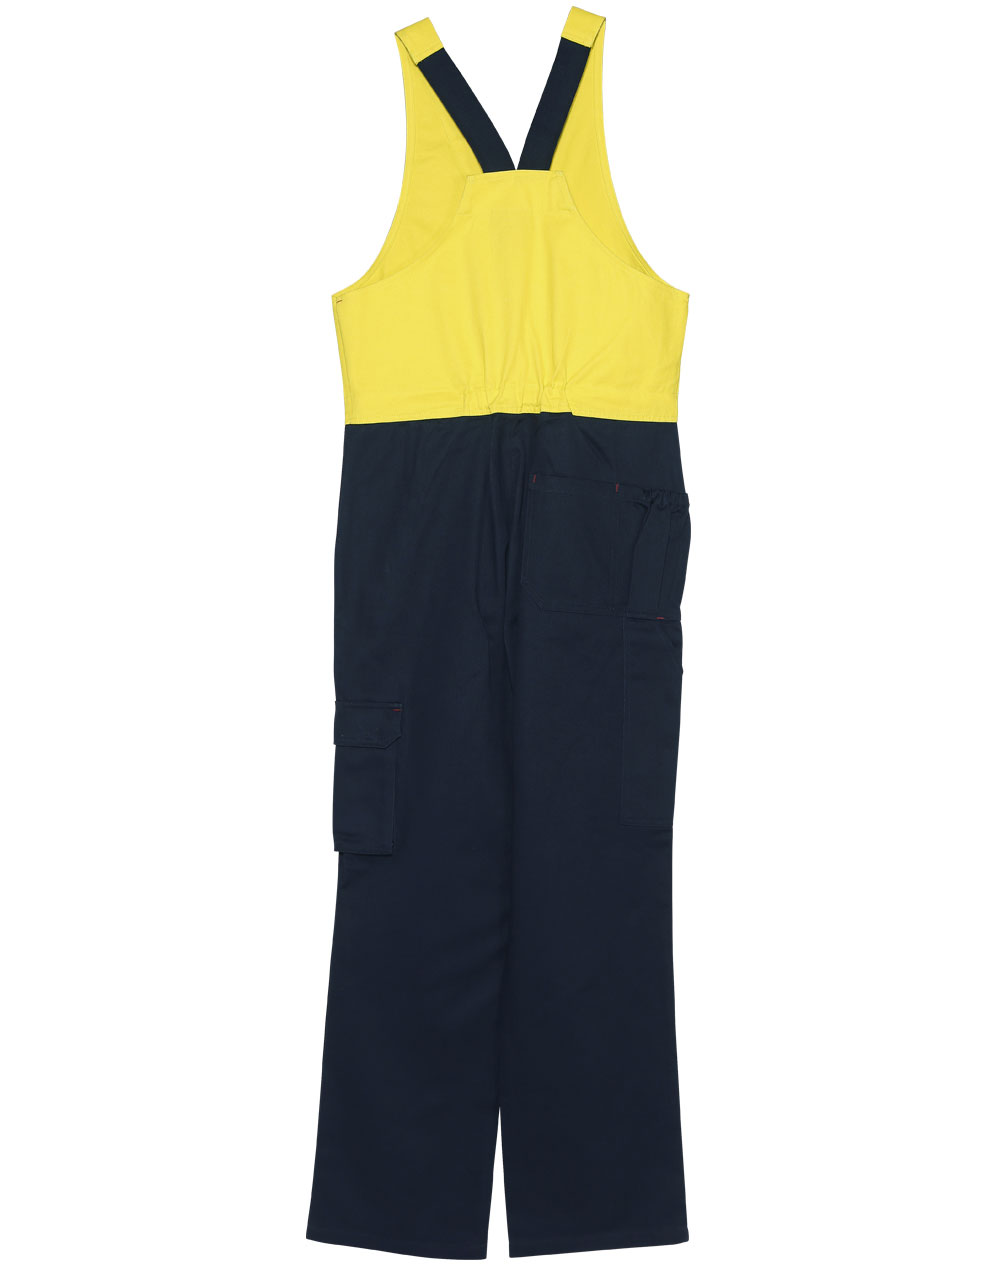 https://s3-ap-southeast-1.amazonaws.com/ws-imgs/WORKWEAR/SW201_Yellow.Navy_Back.jpg